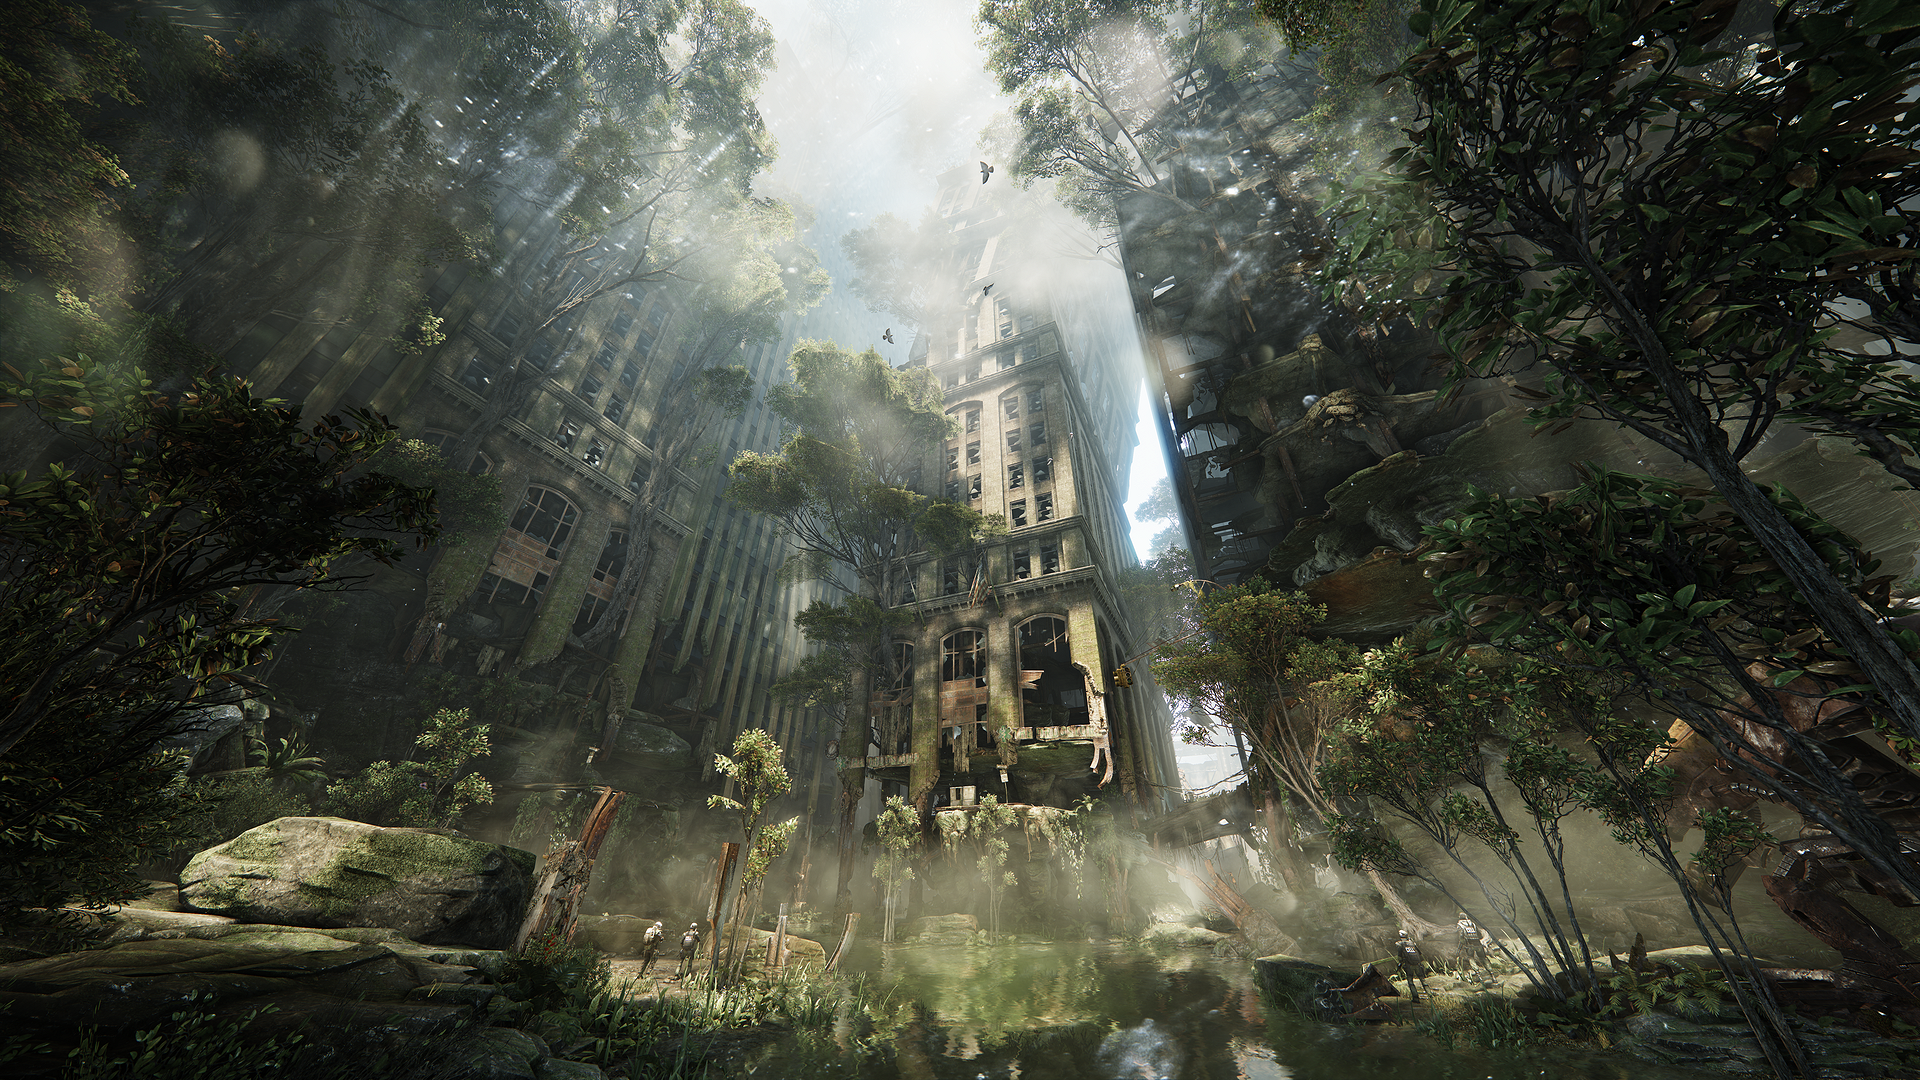 Crysis 3 graphics comparison pc maxed settings vs xbox 360 1080p - Date Posted Mar 28 2015 8